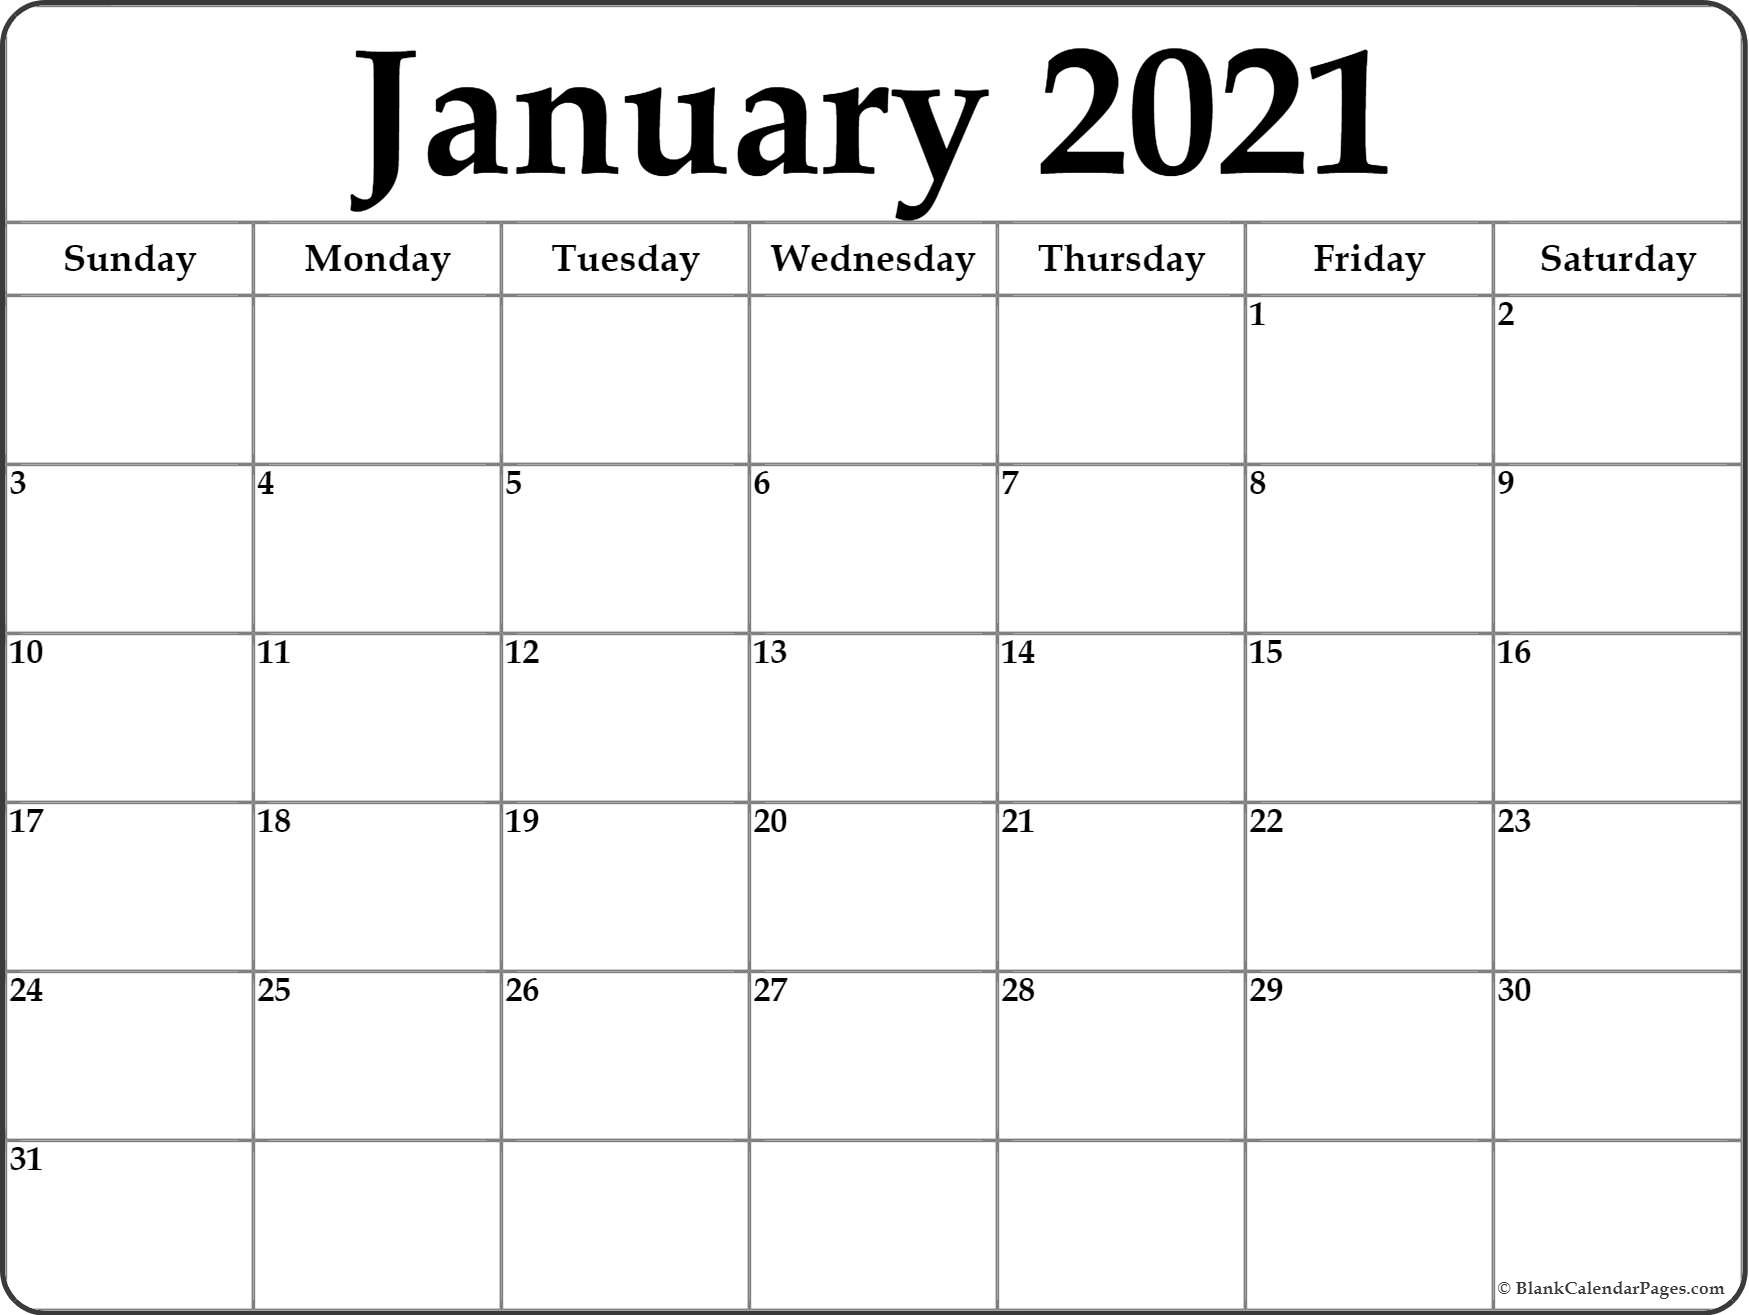 January 2021 Calendar | Free Printable Monthly Calendars-Free Printable Blank Monthly Calendar Year 2021